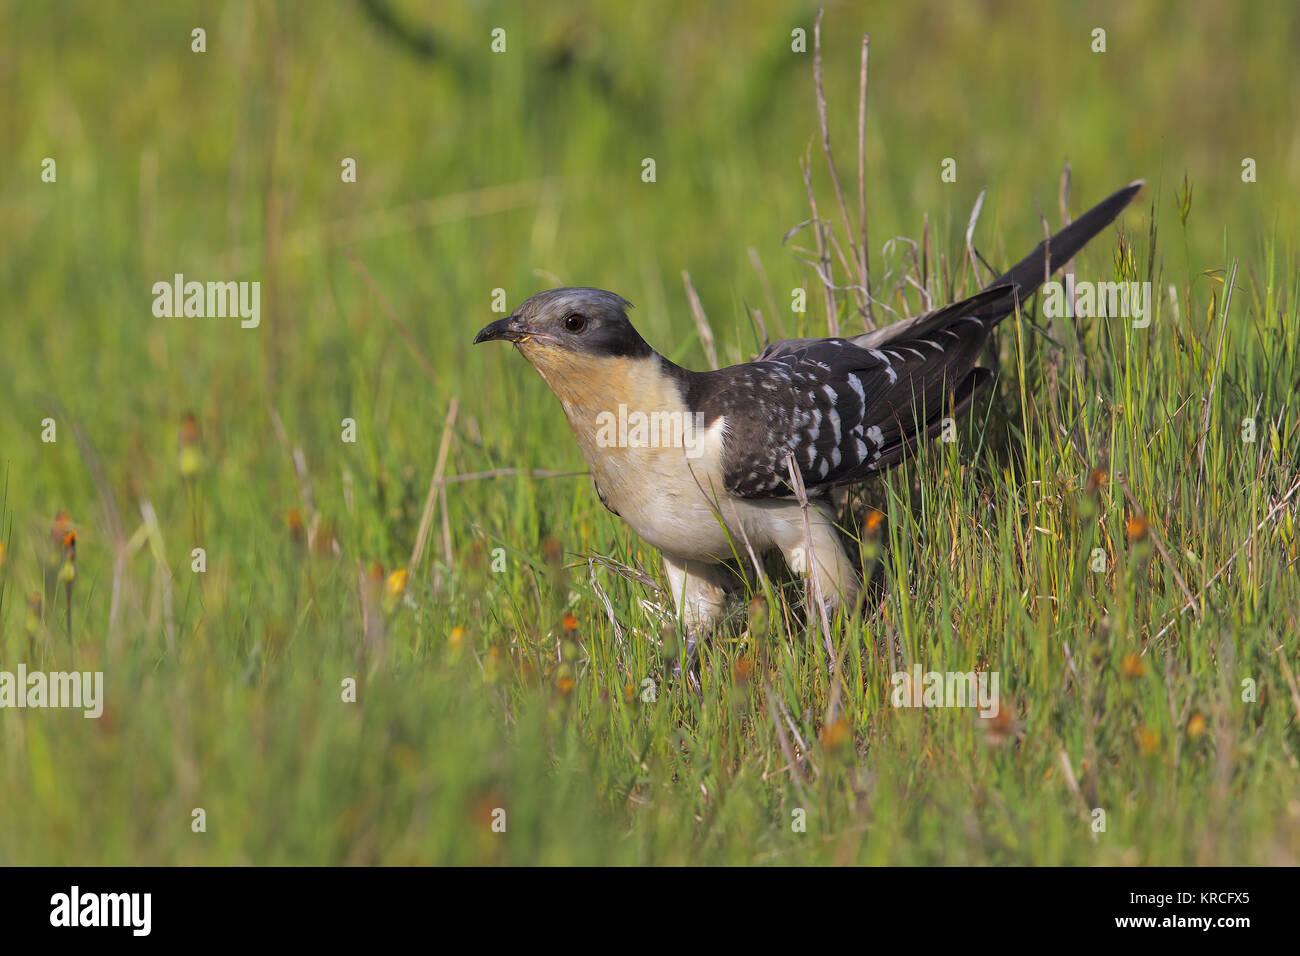 Great Spotted Cuckoo - Stock Image